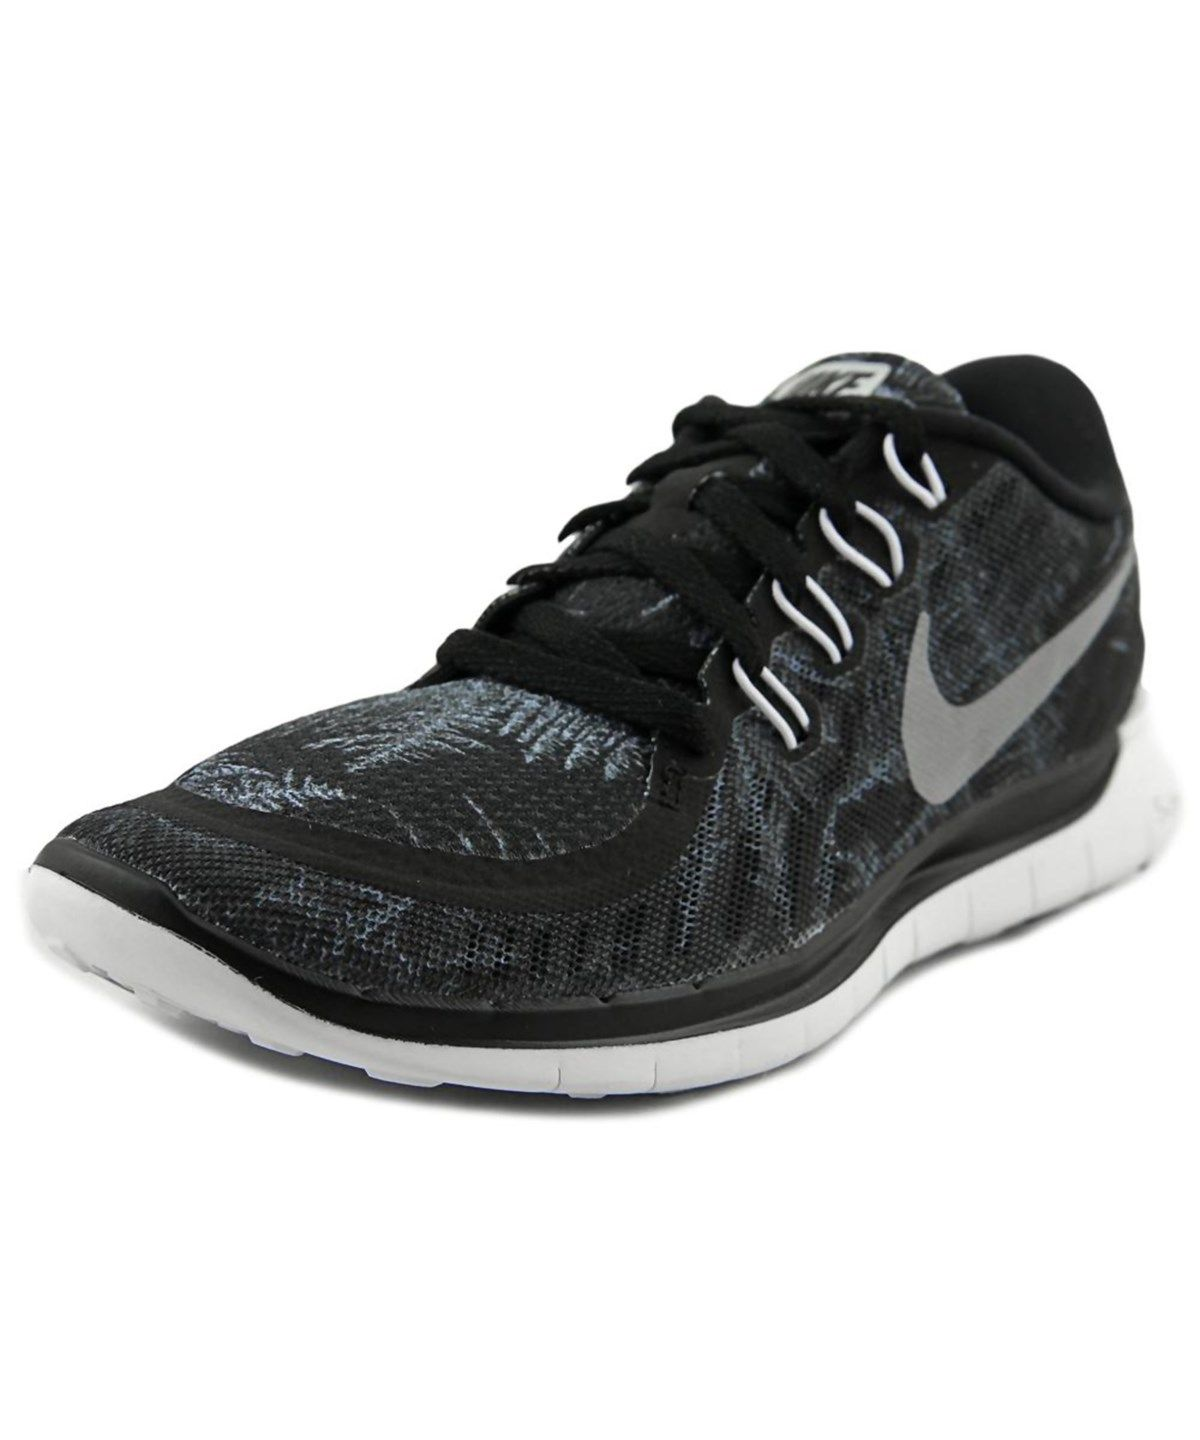 7e79ae03c3fe NIKE NIKE FREE 5.0 SOLSTICE WOMEN ROUND TOE SYNTHETIC BLACK SNEAKERS .  nike   shoes  sneakers